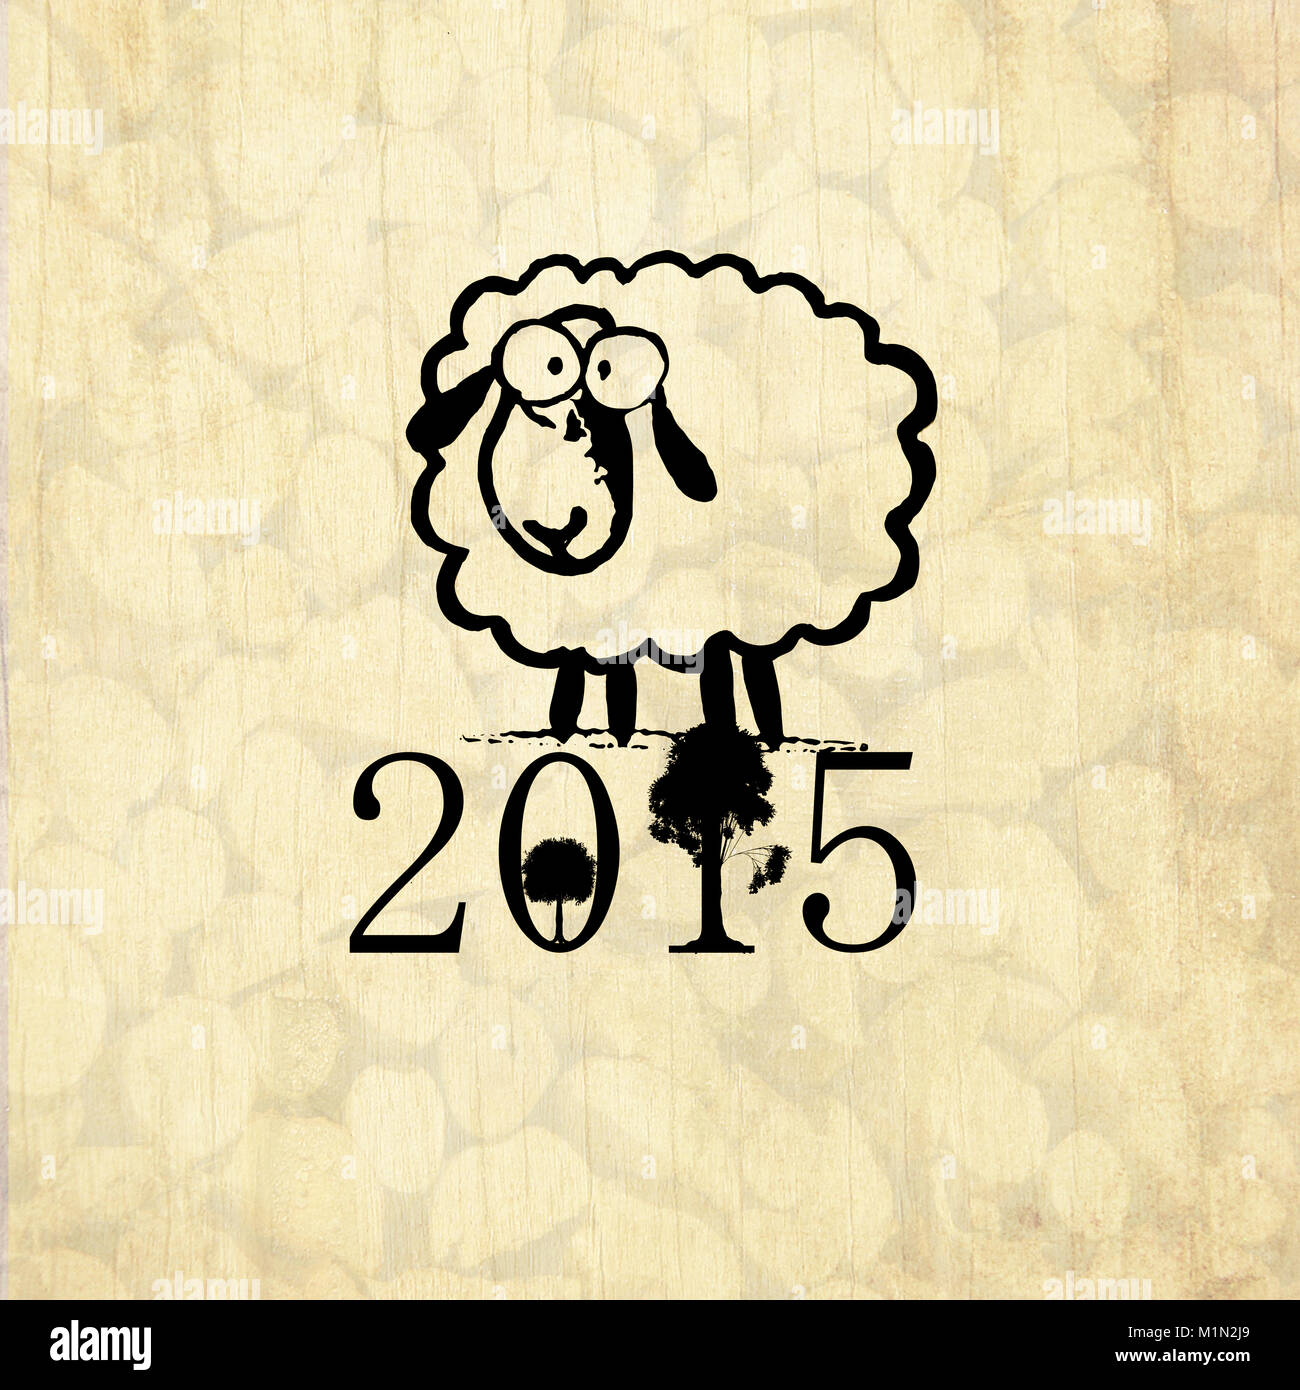 Chinese new year greeting card with symbol of 2015 cute drawing chinese new year greeting card with symbol of 2015 cute drawing sheep and with wood background kristyandbryce Image collections